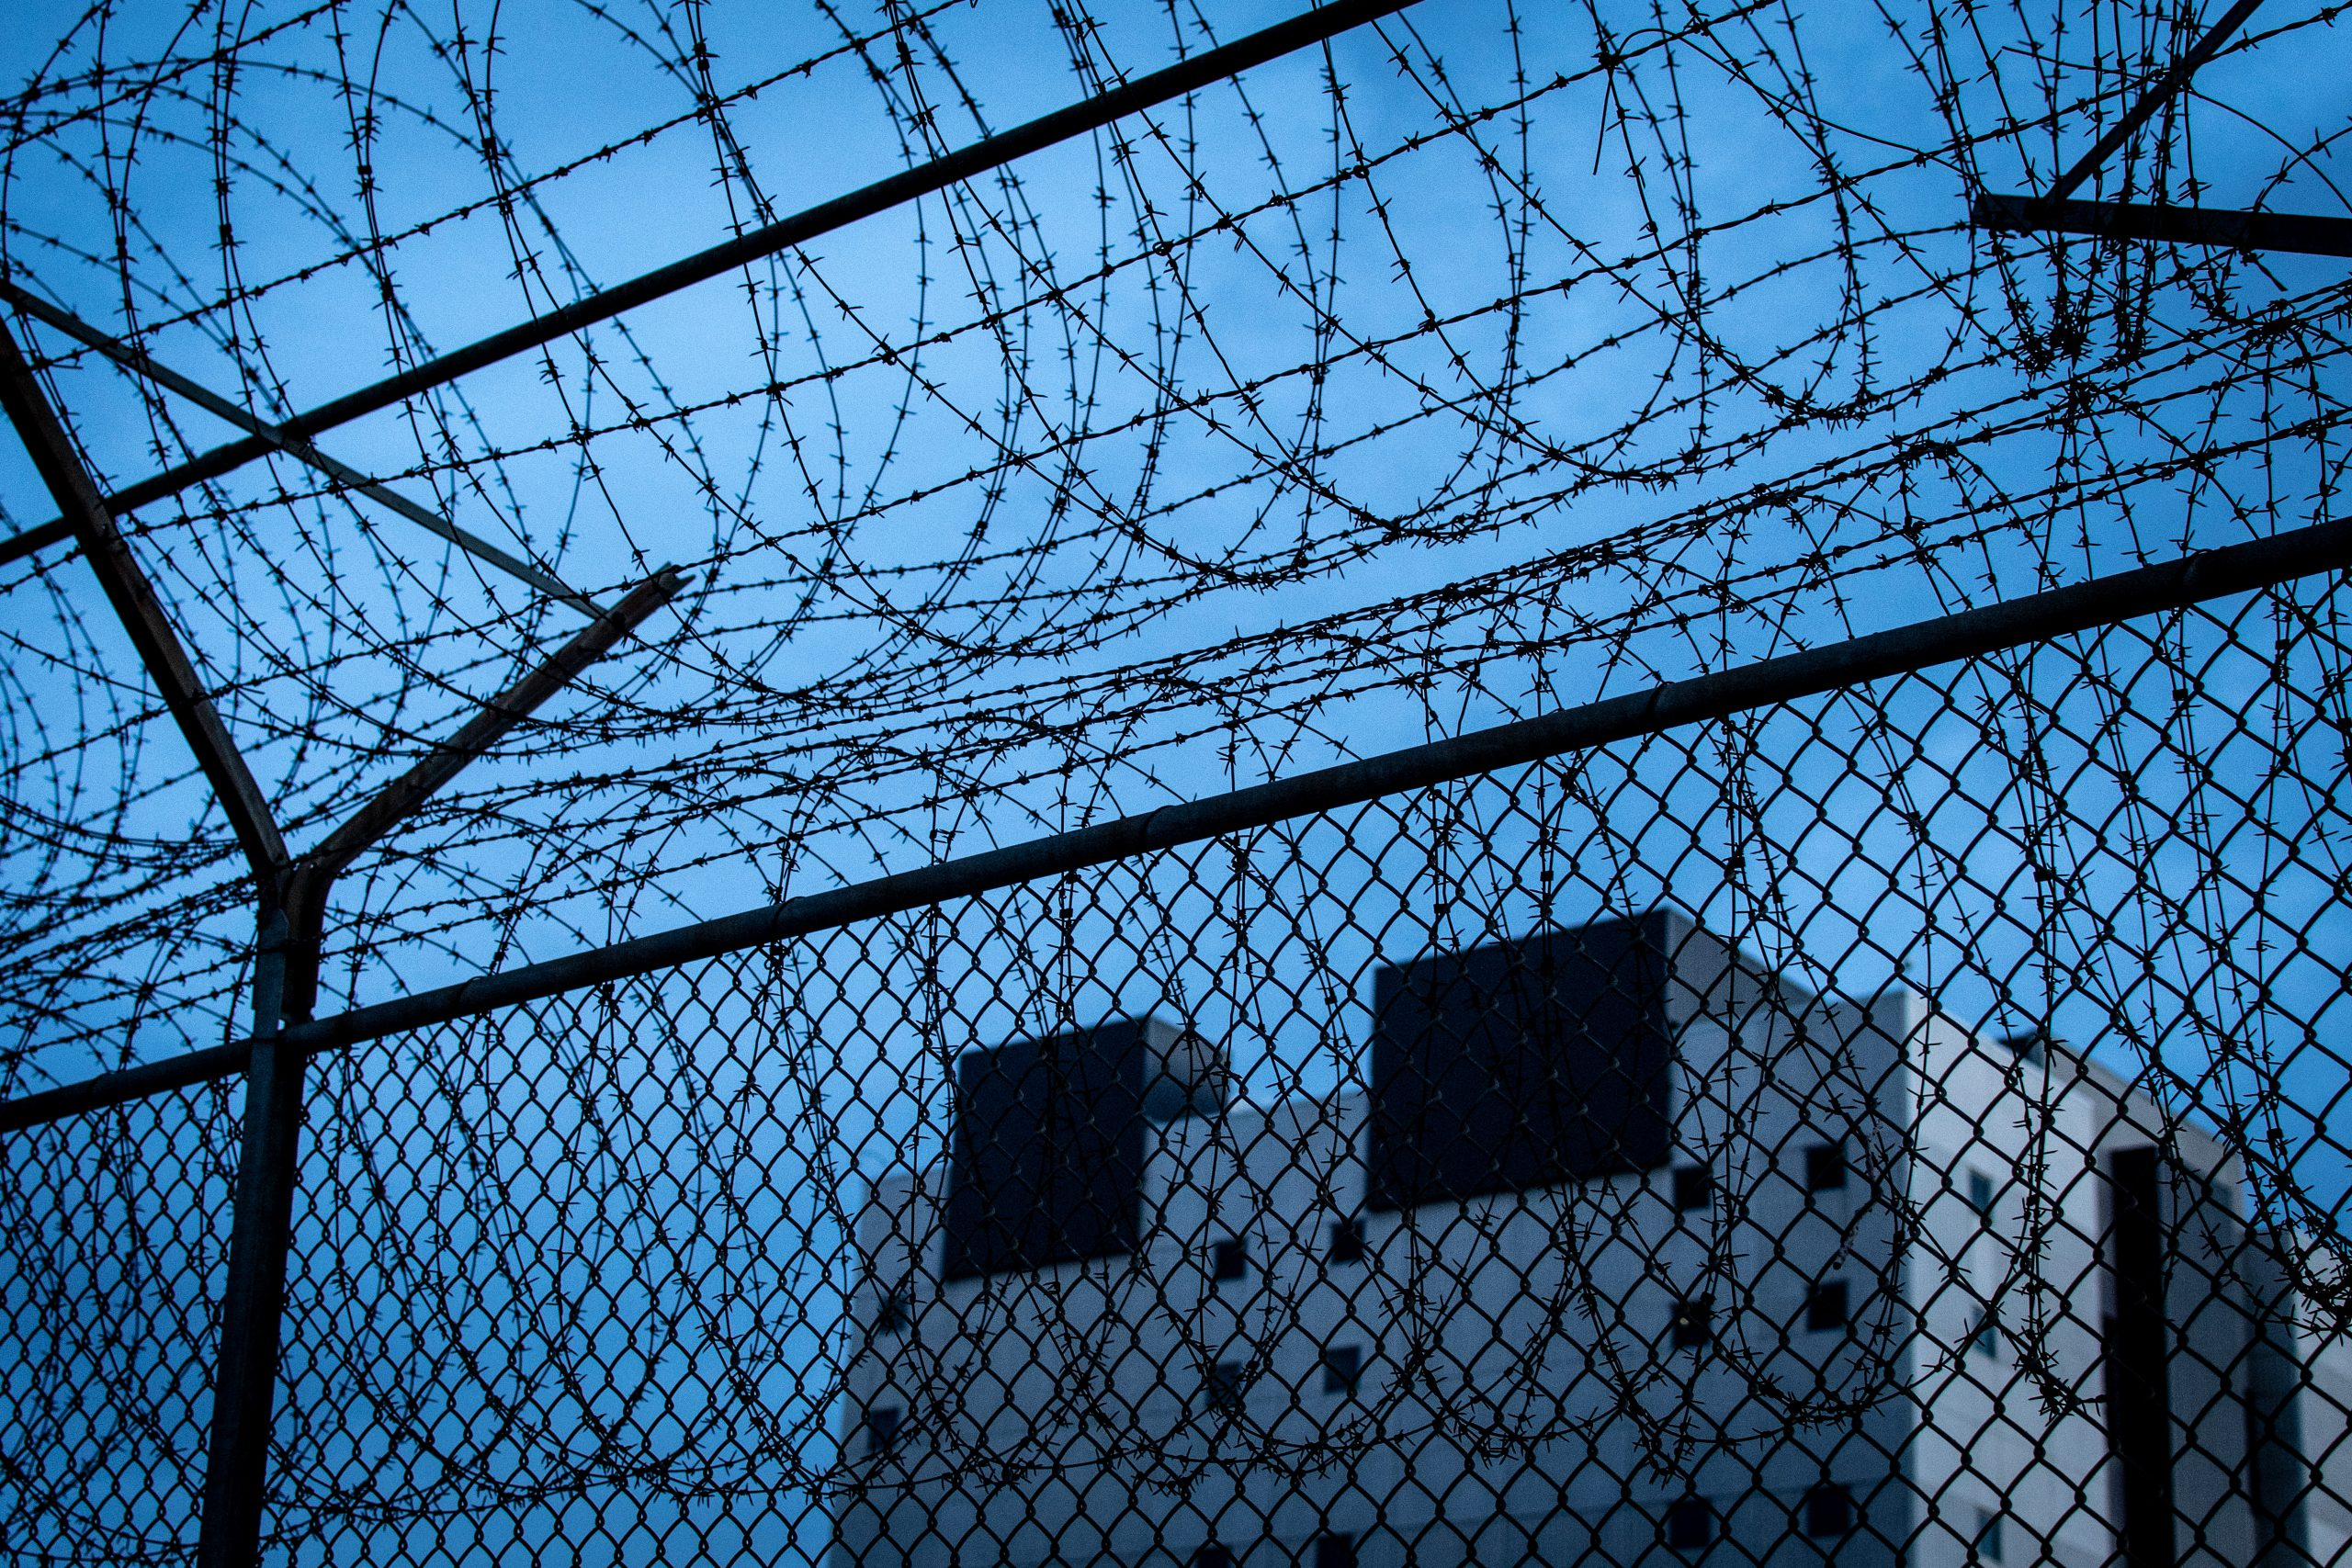 Mental health crisis feared in Colorado jails and prisons due to COVID-19 lockdowns